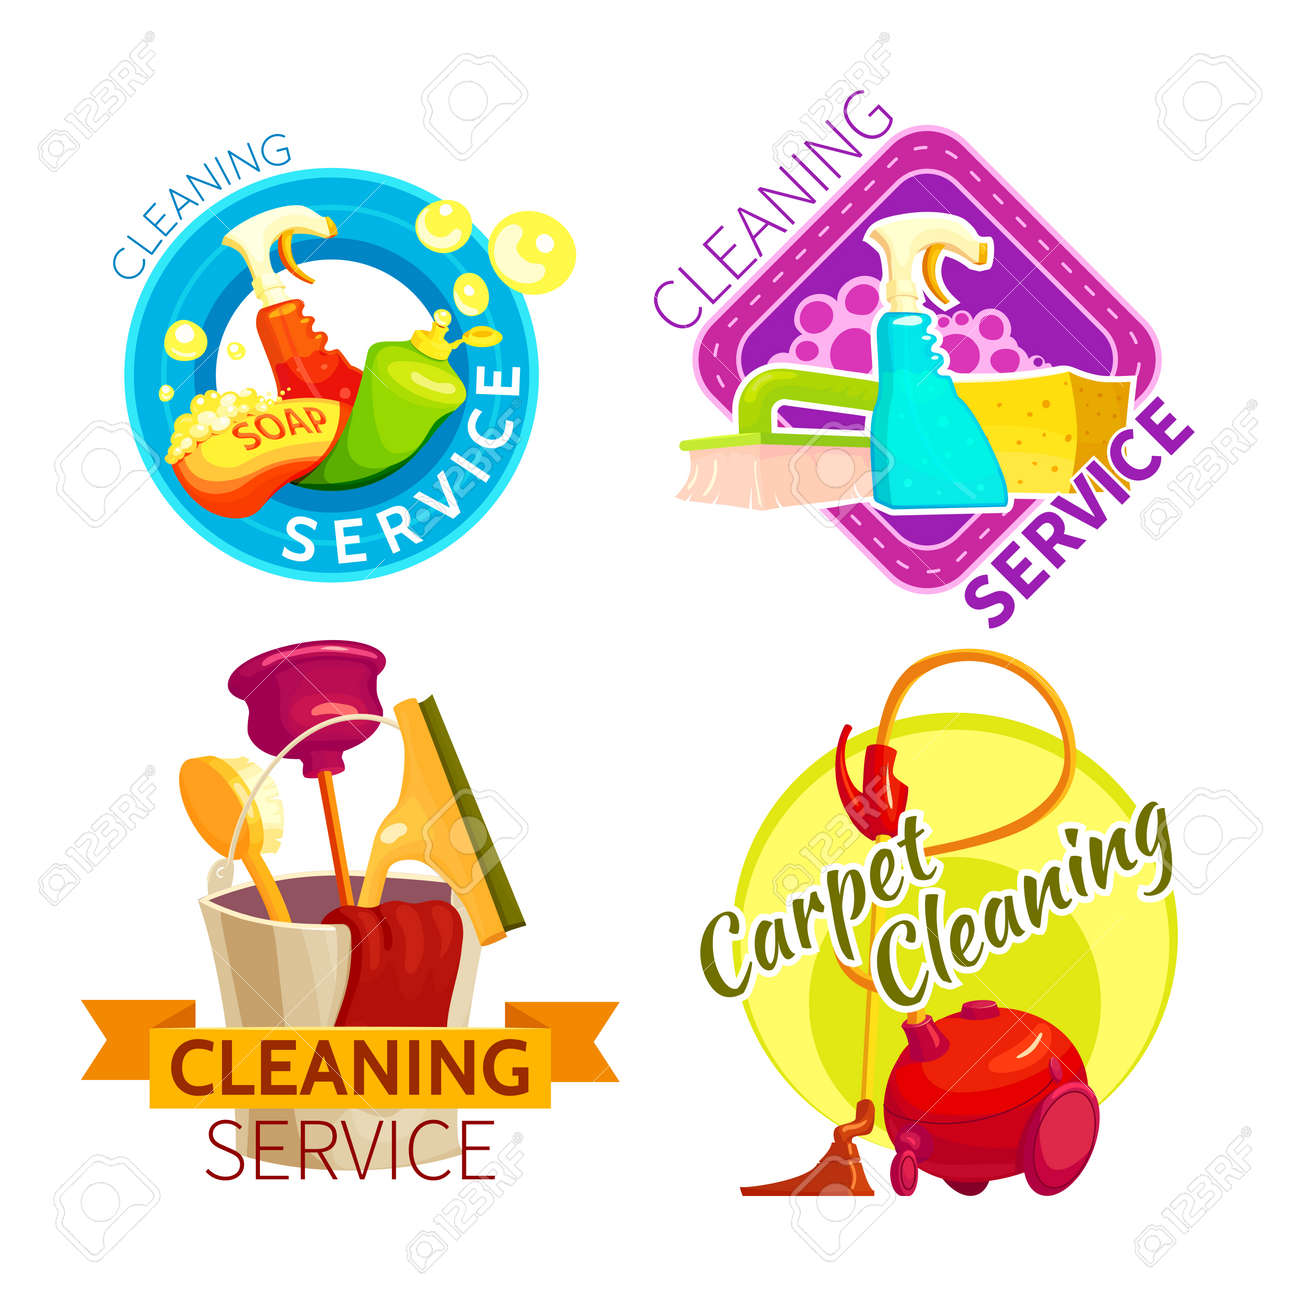 Colored cleaning service badge set with cleaning service and carpet cleaning descriptions vector illustration - 166541009